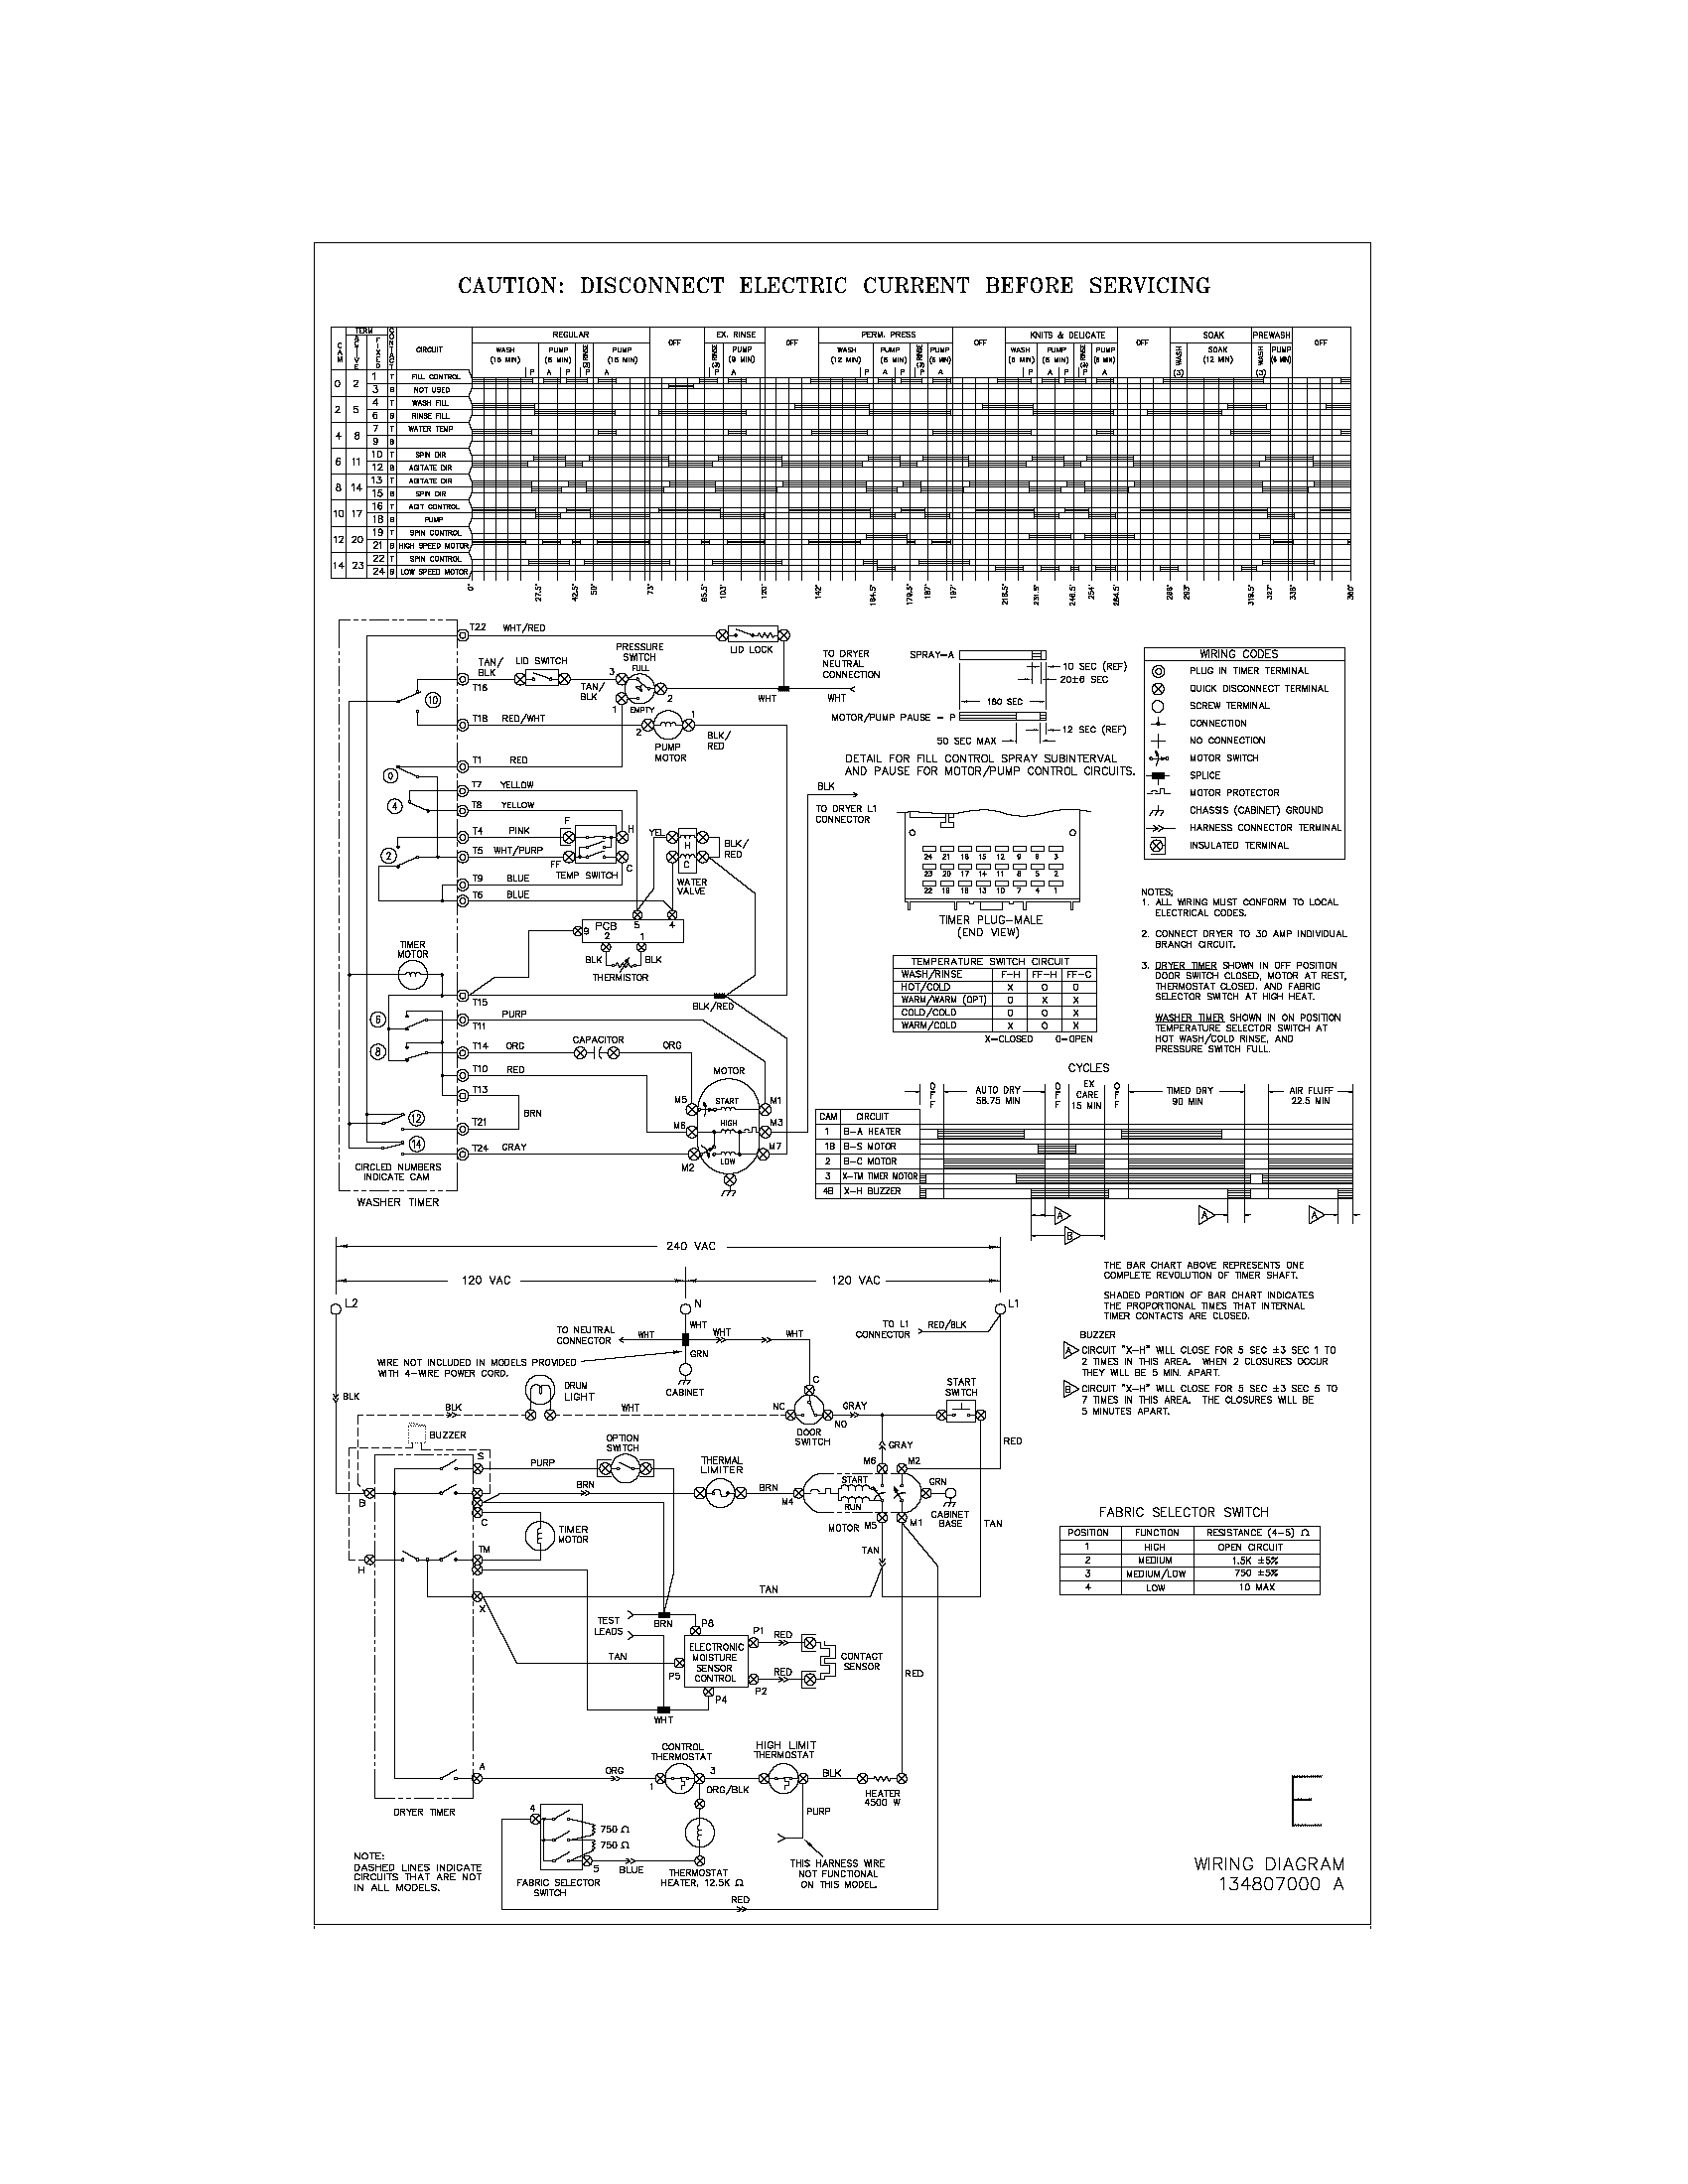 kenmore laundry center wiring diagram kenmore dryer laundry center washer and dryer laundry [ 1700 x 2200 Pixel ]